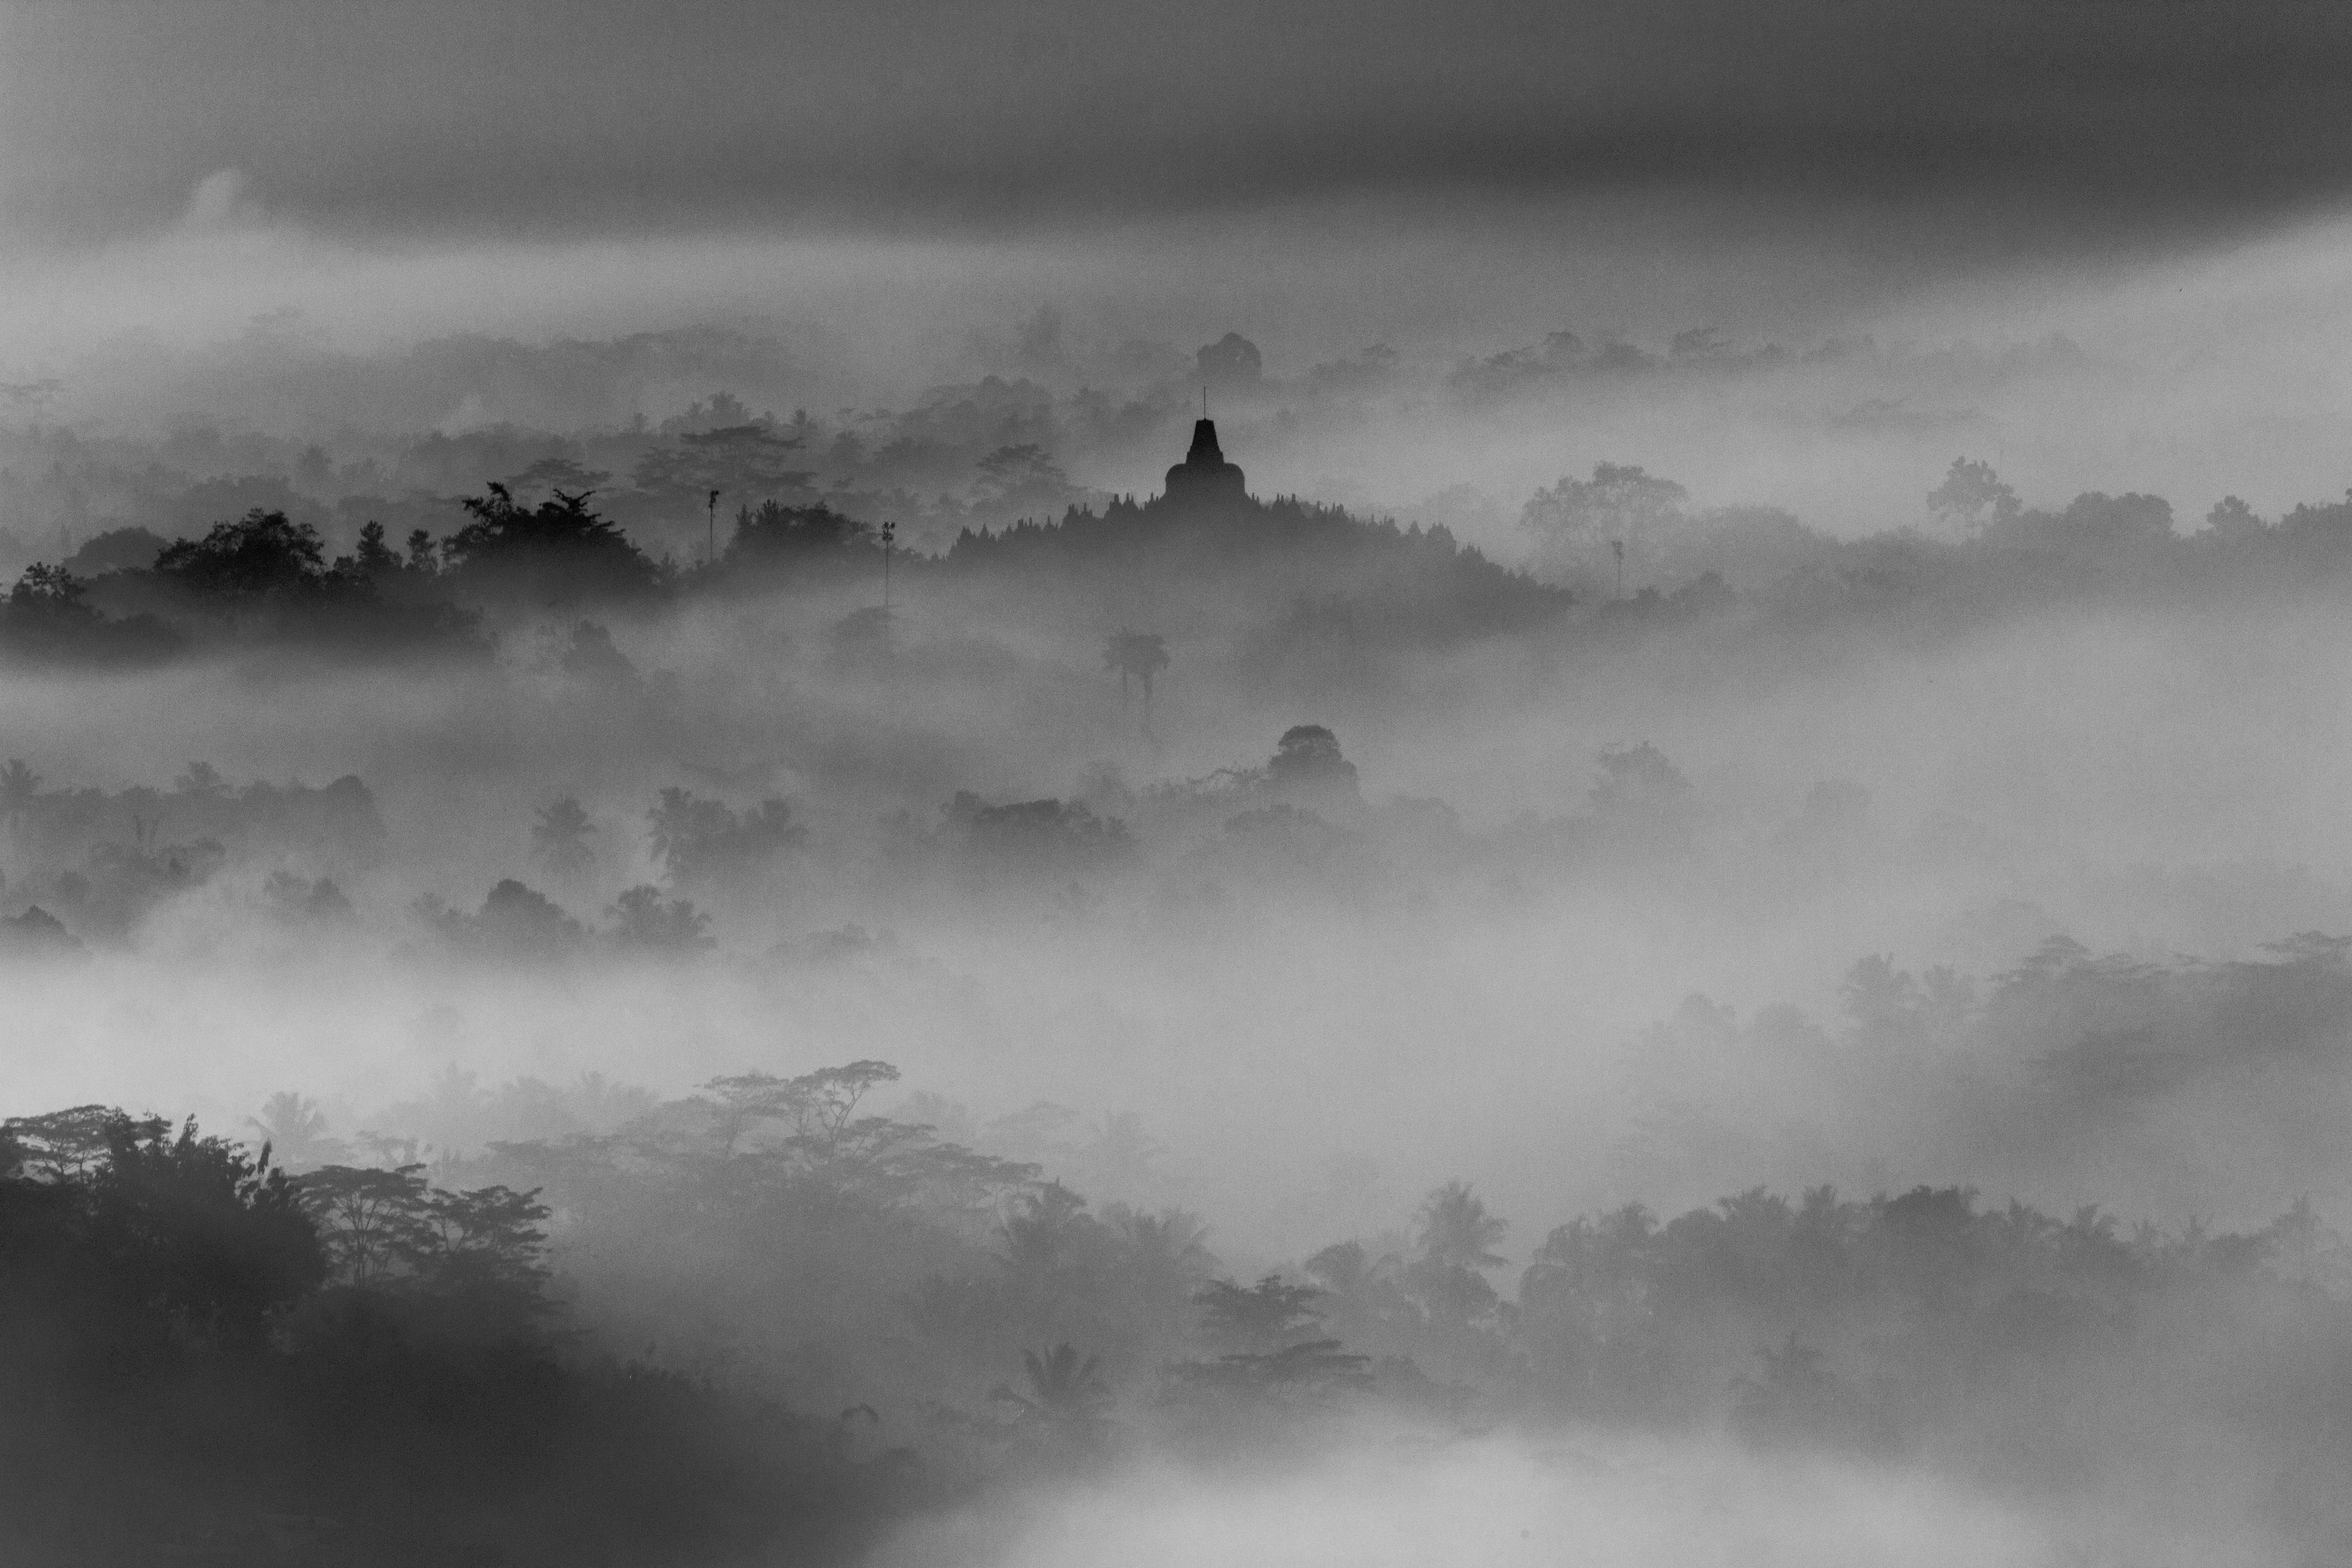 A desaturated shot of the silhouettes of wooded hills with a spire of a temple rising up above the mist